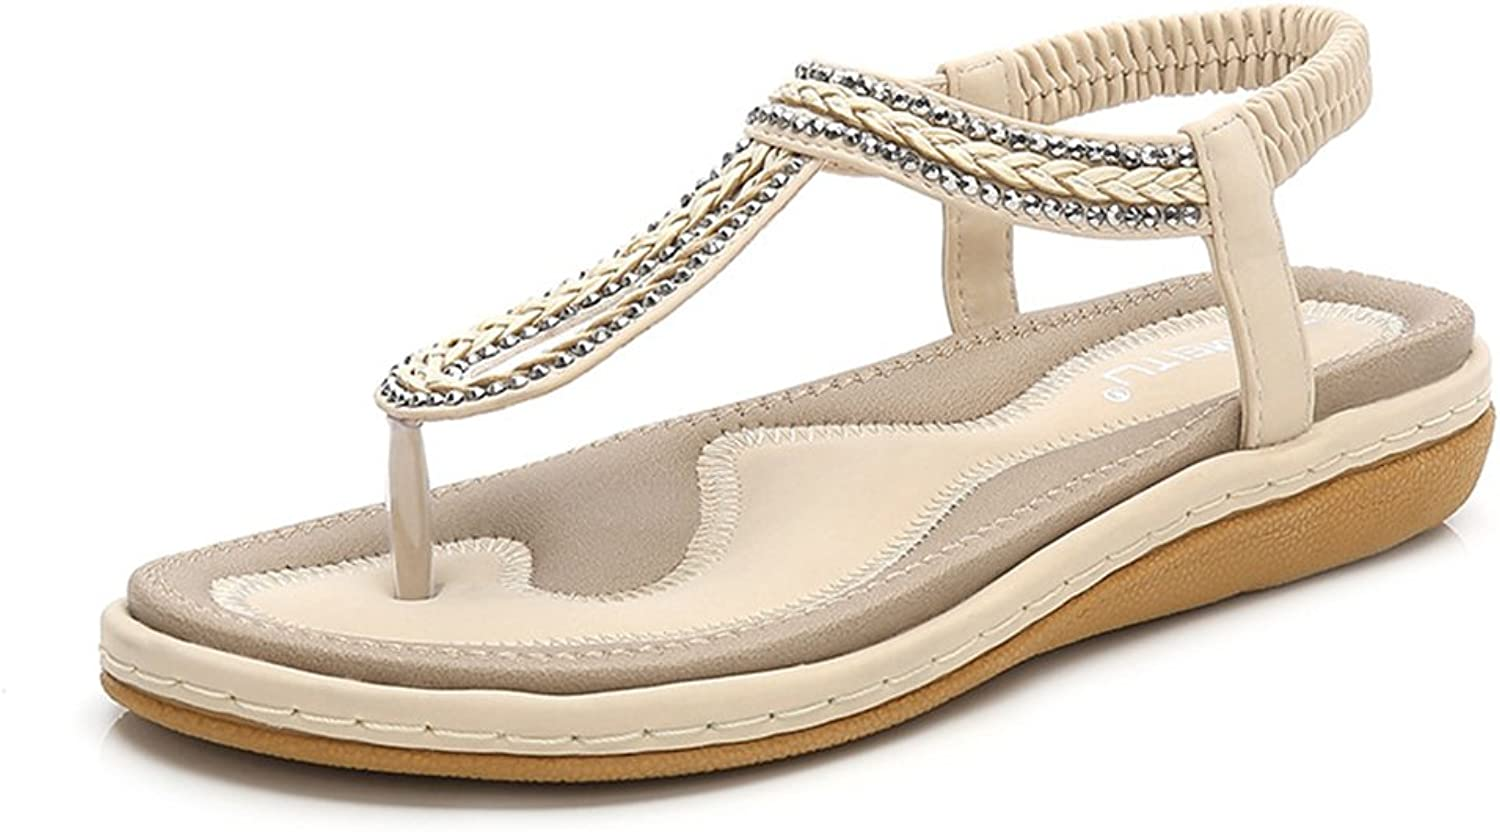 Navoku Womens Leather Jeweled Summer Thong Sandles Ladies Sandals